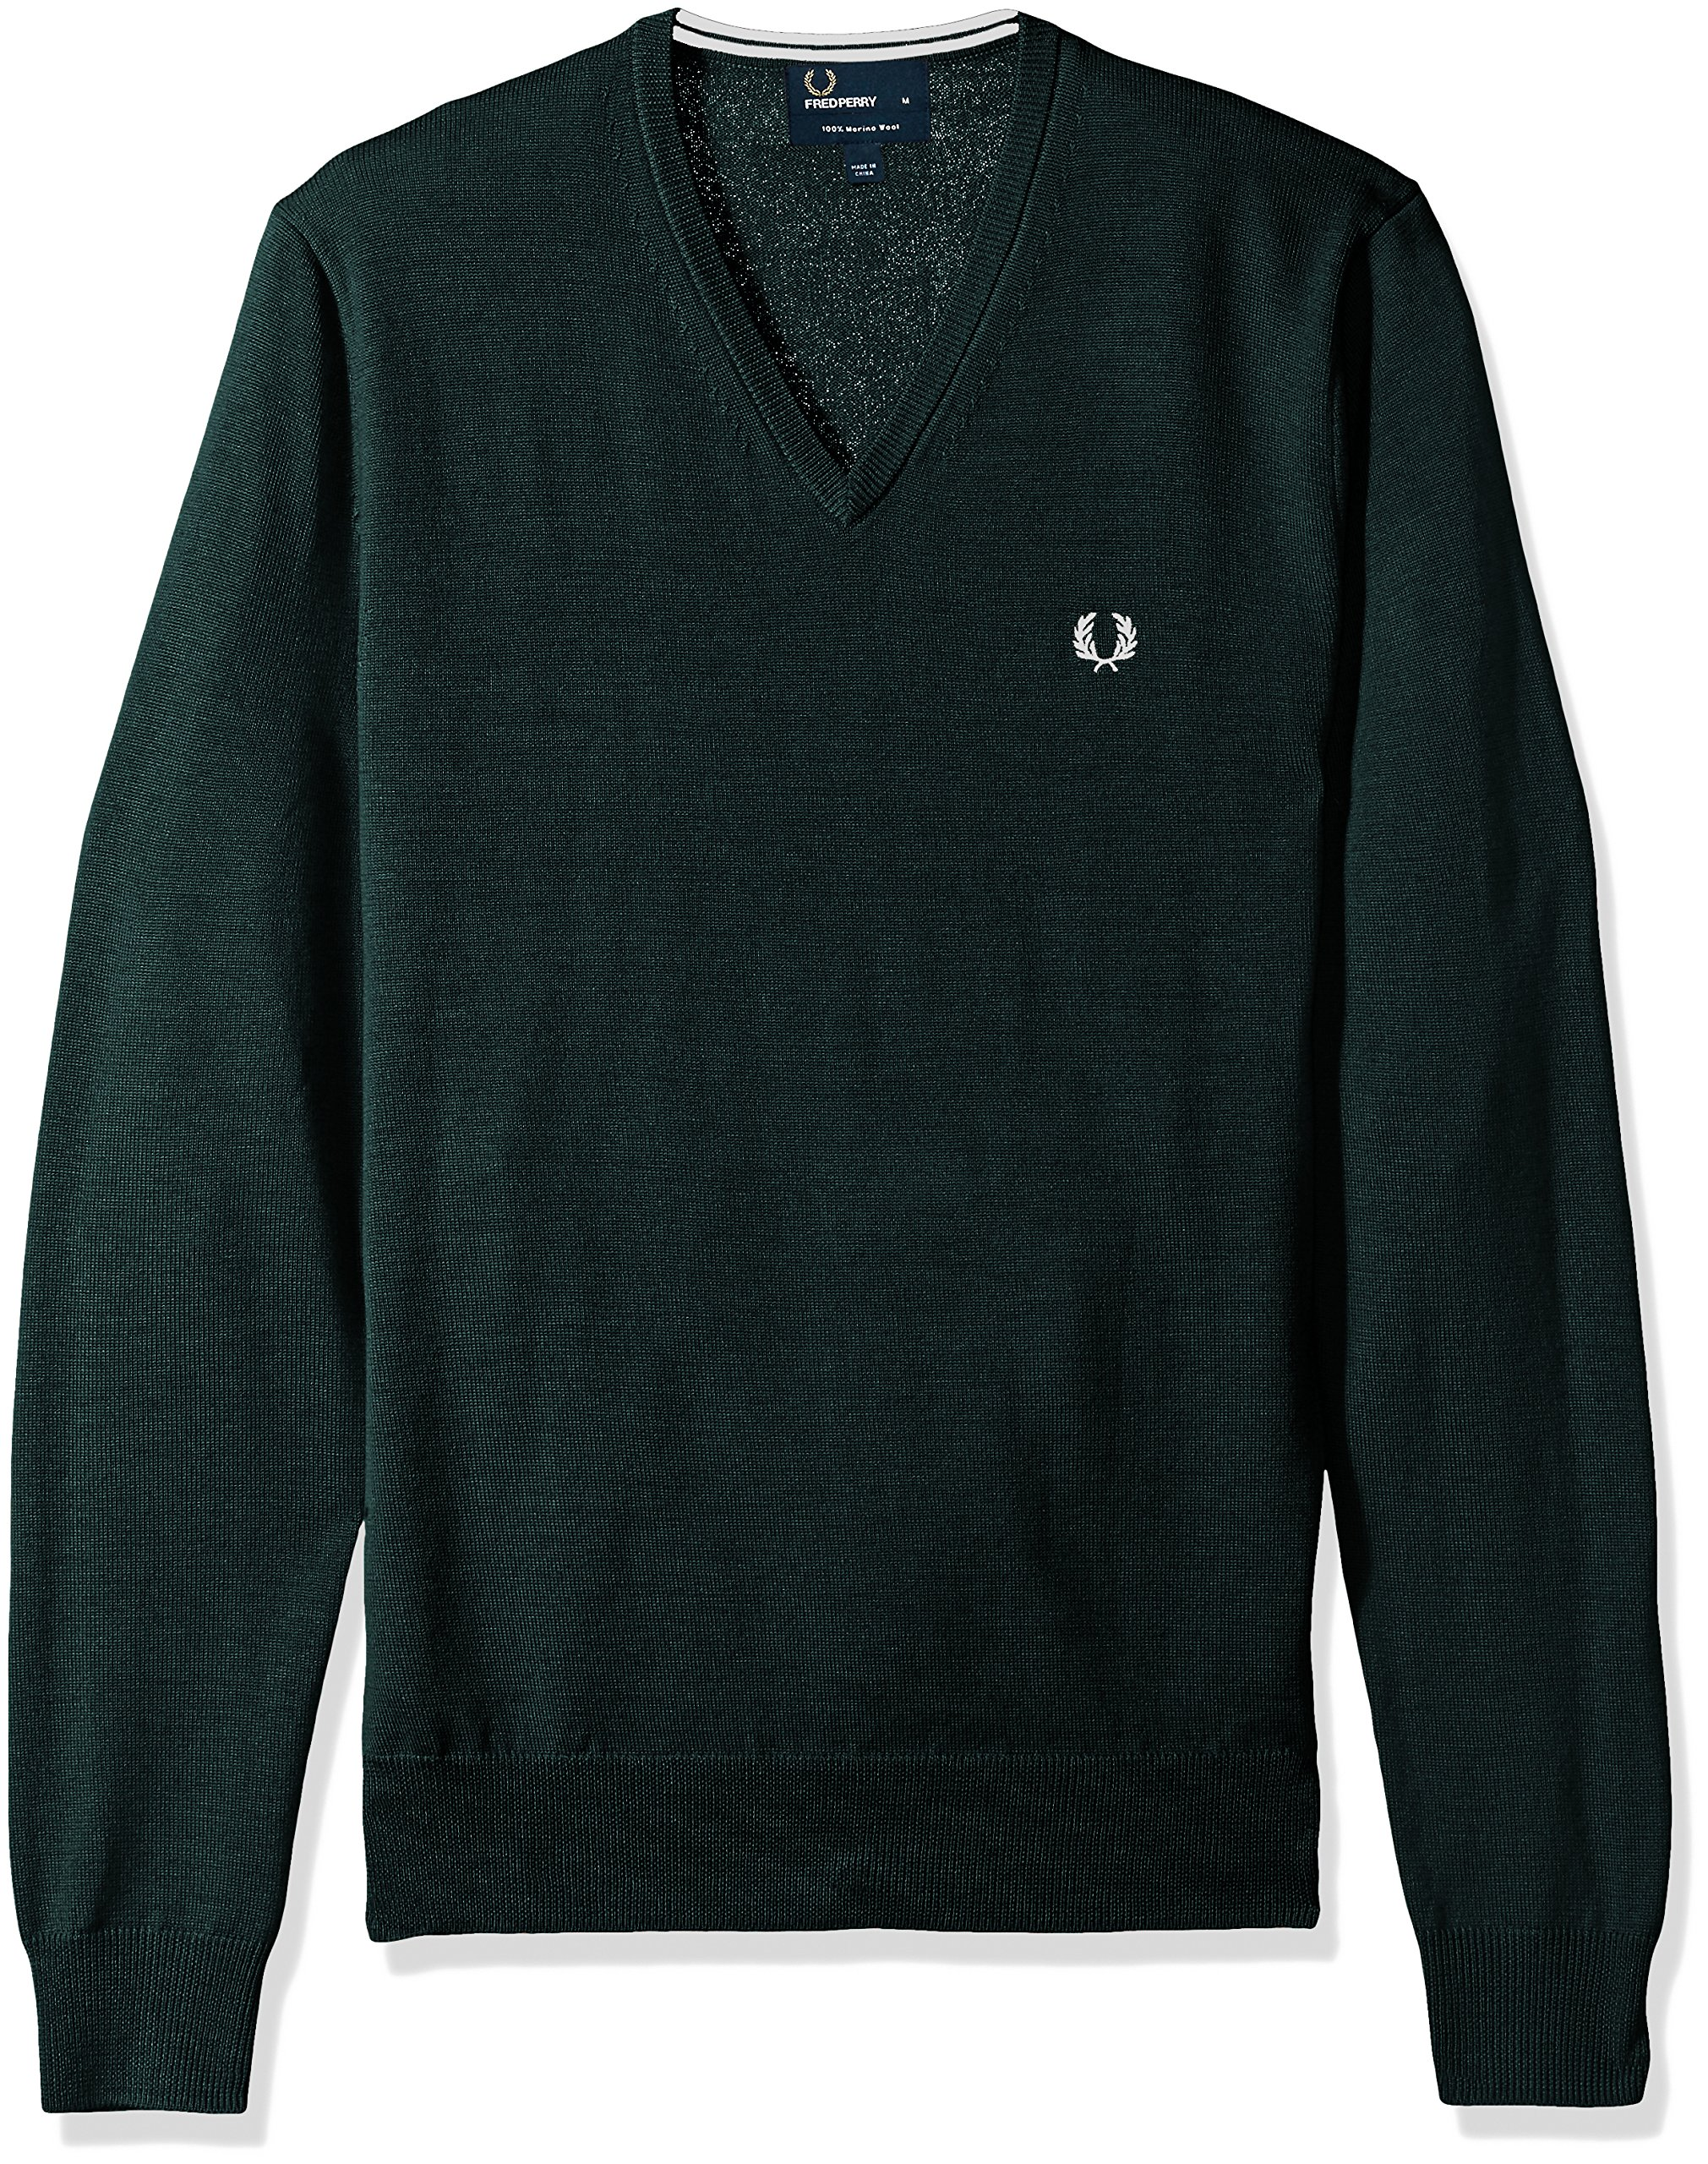 Details about Fred Perry Men's Classic V Neck Sweater,Brit Racin Choose SZcolor